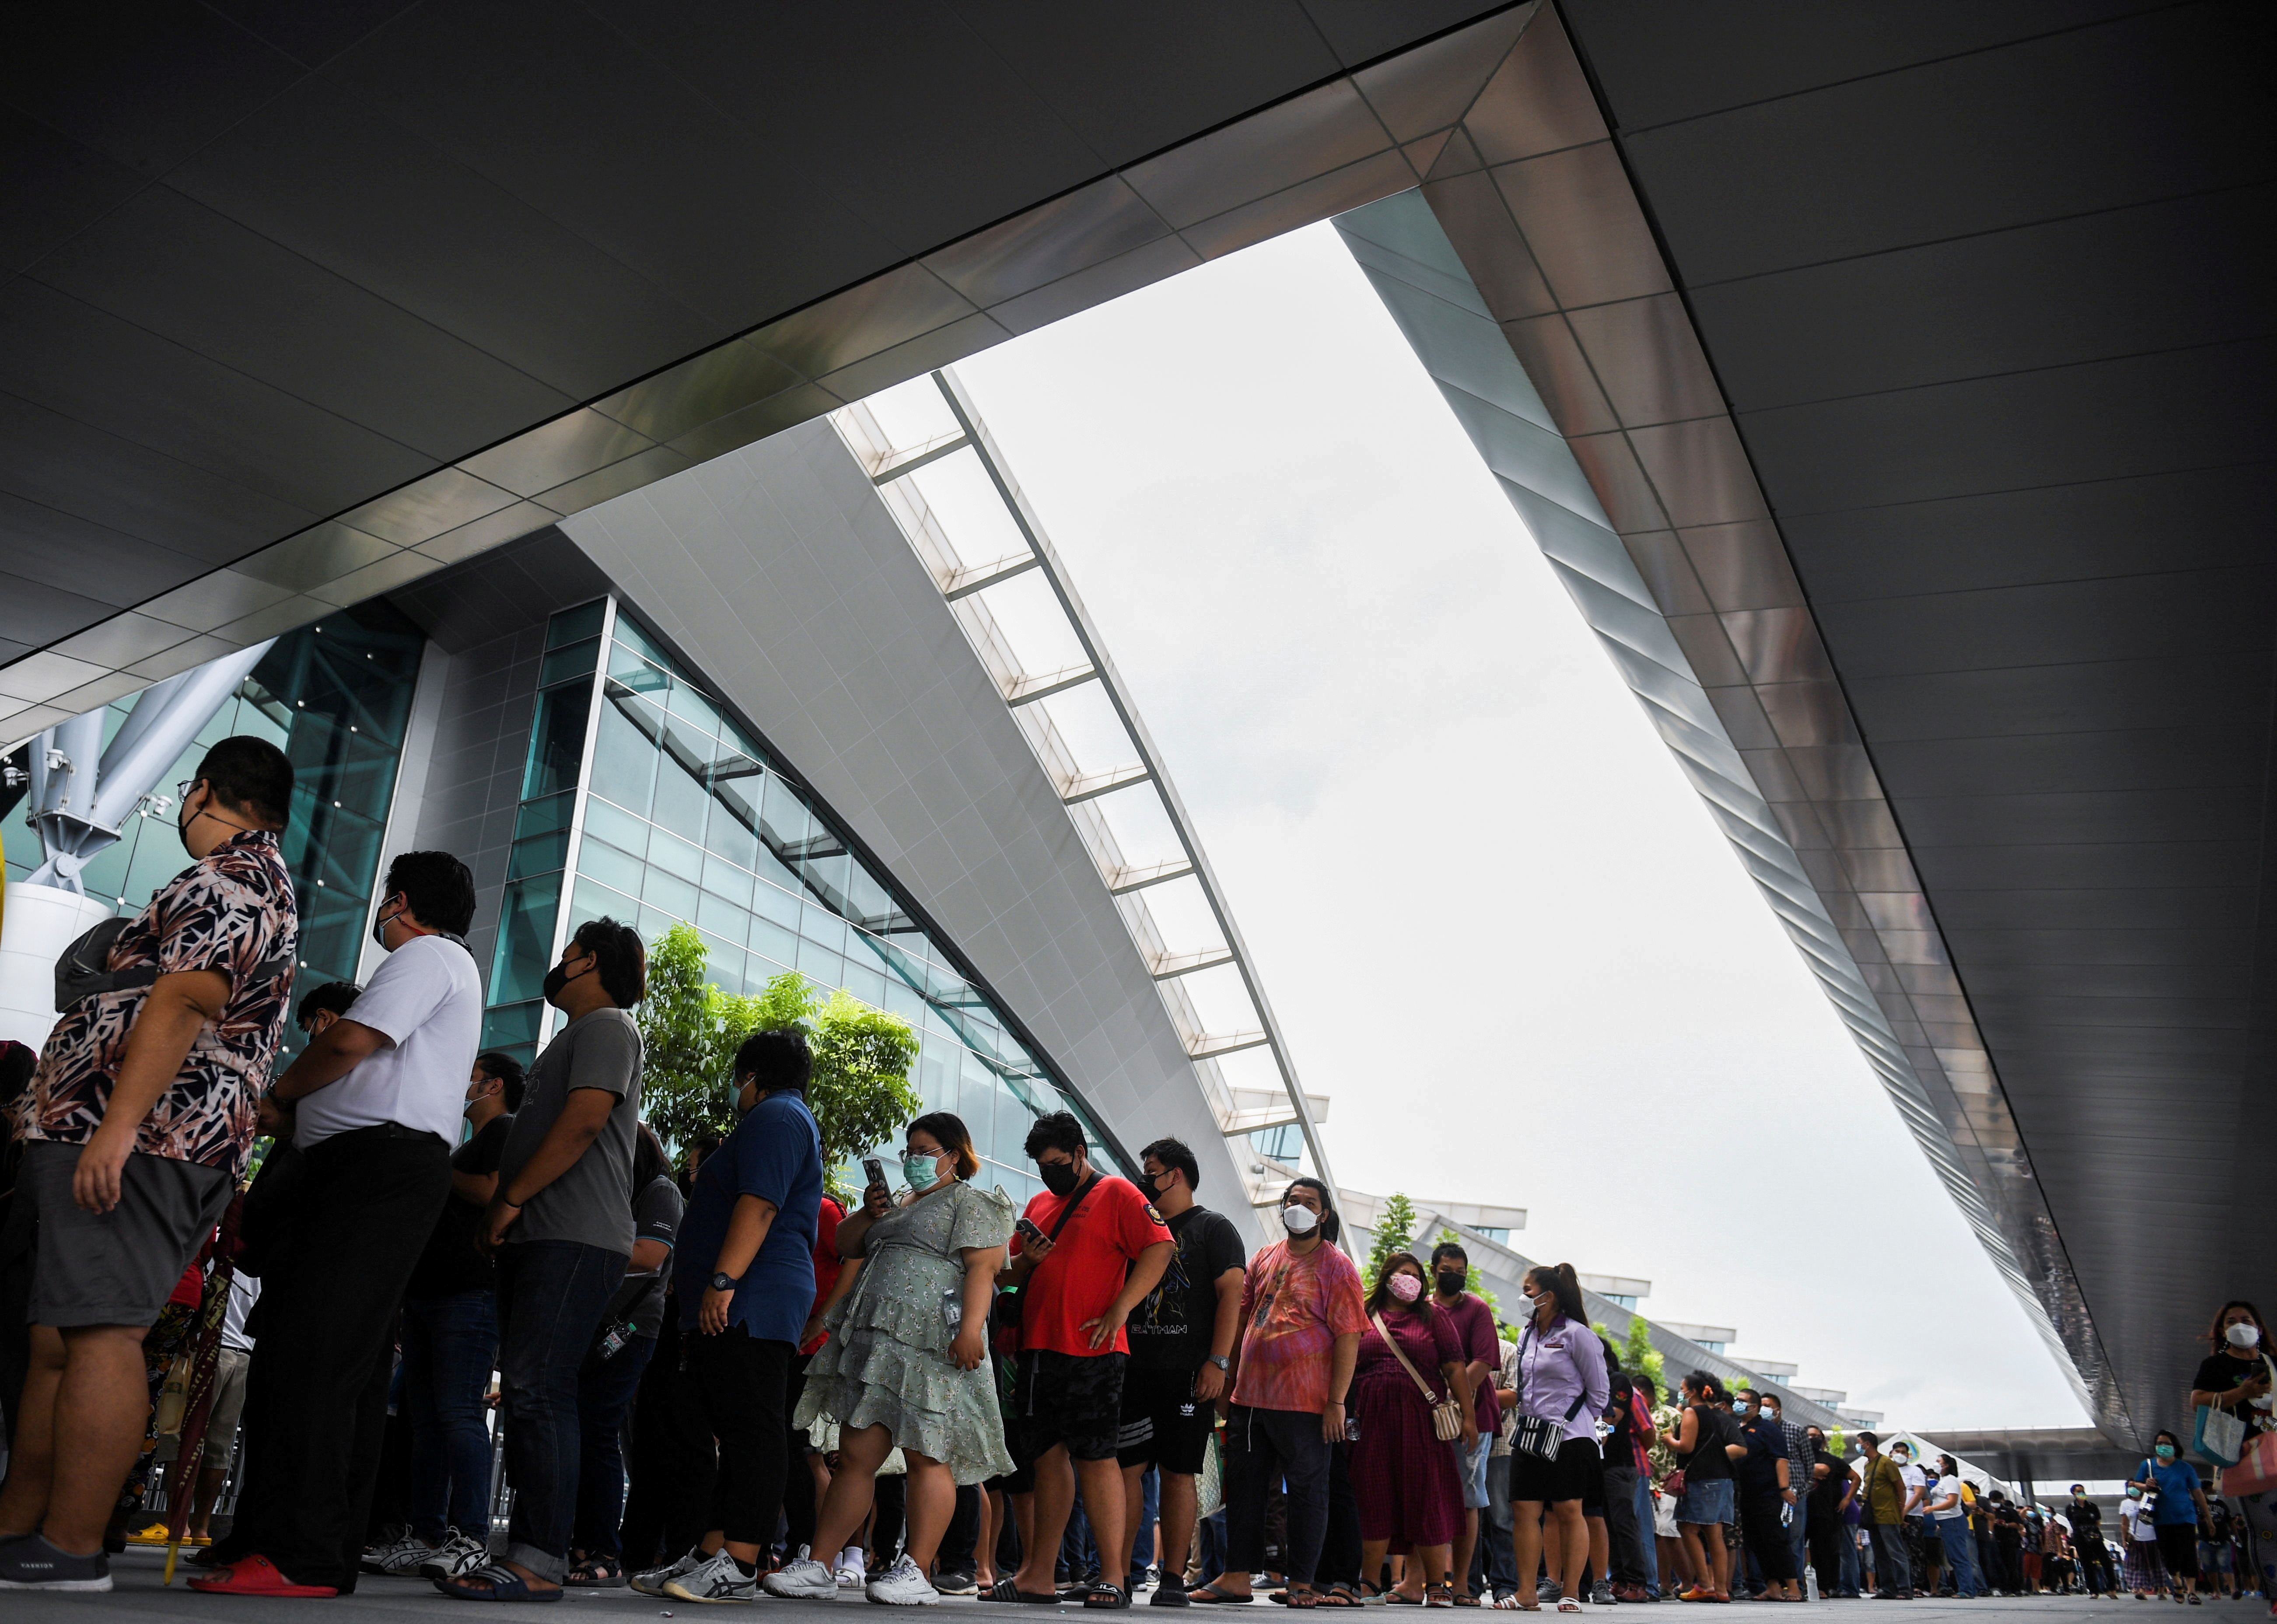 People wearing masks queue outside the Central Vaccination Center as Thailand opens walk-in first dose of the AstraZeneca coronavirus (COVID-19) vaccination scheme for elders, people with a minimum weight of 100 kg and pregnant women in Bangkok, Thailand, July 22, 2021. REUTERS/Chalinee Thirasupa